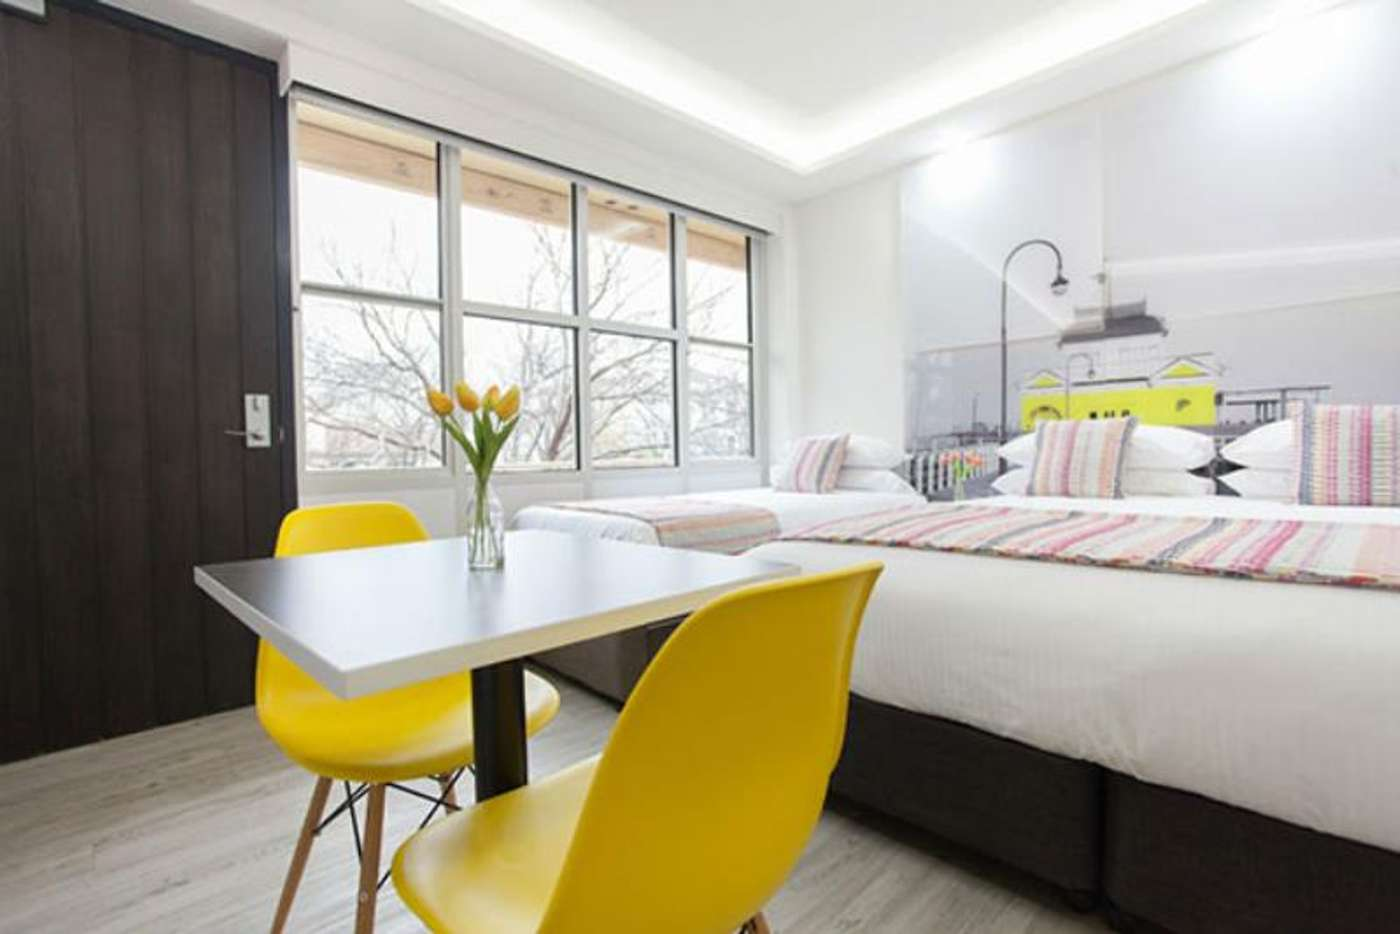 Main view of Homely apartment listing, 103/63 Fitzroy Street, St Kilda VIC 3182